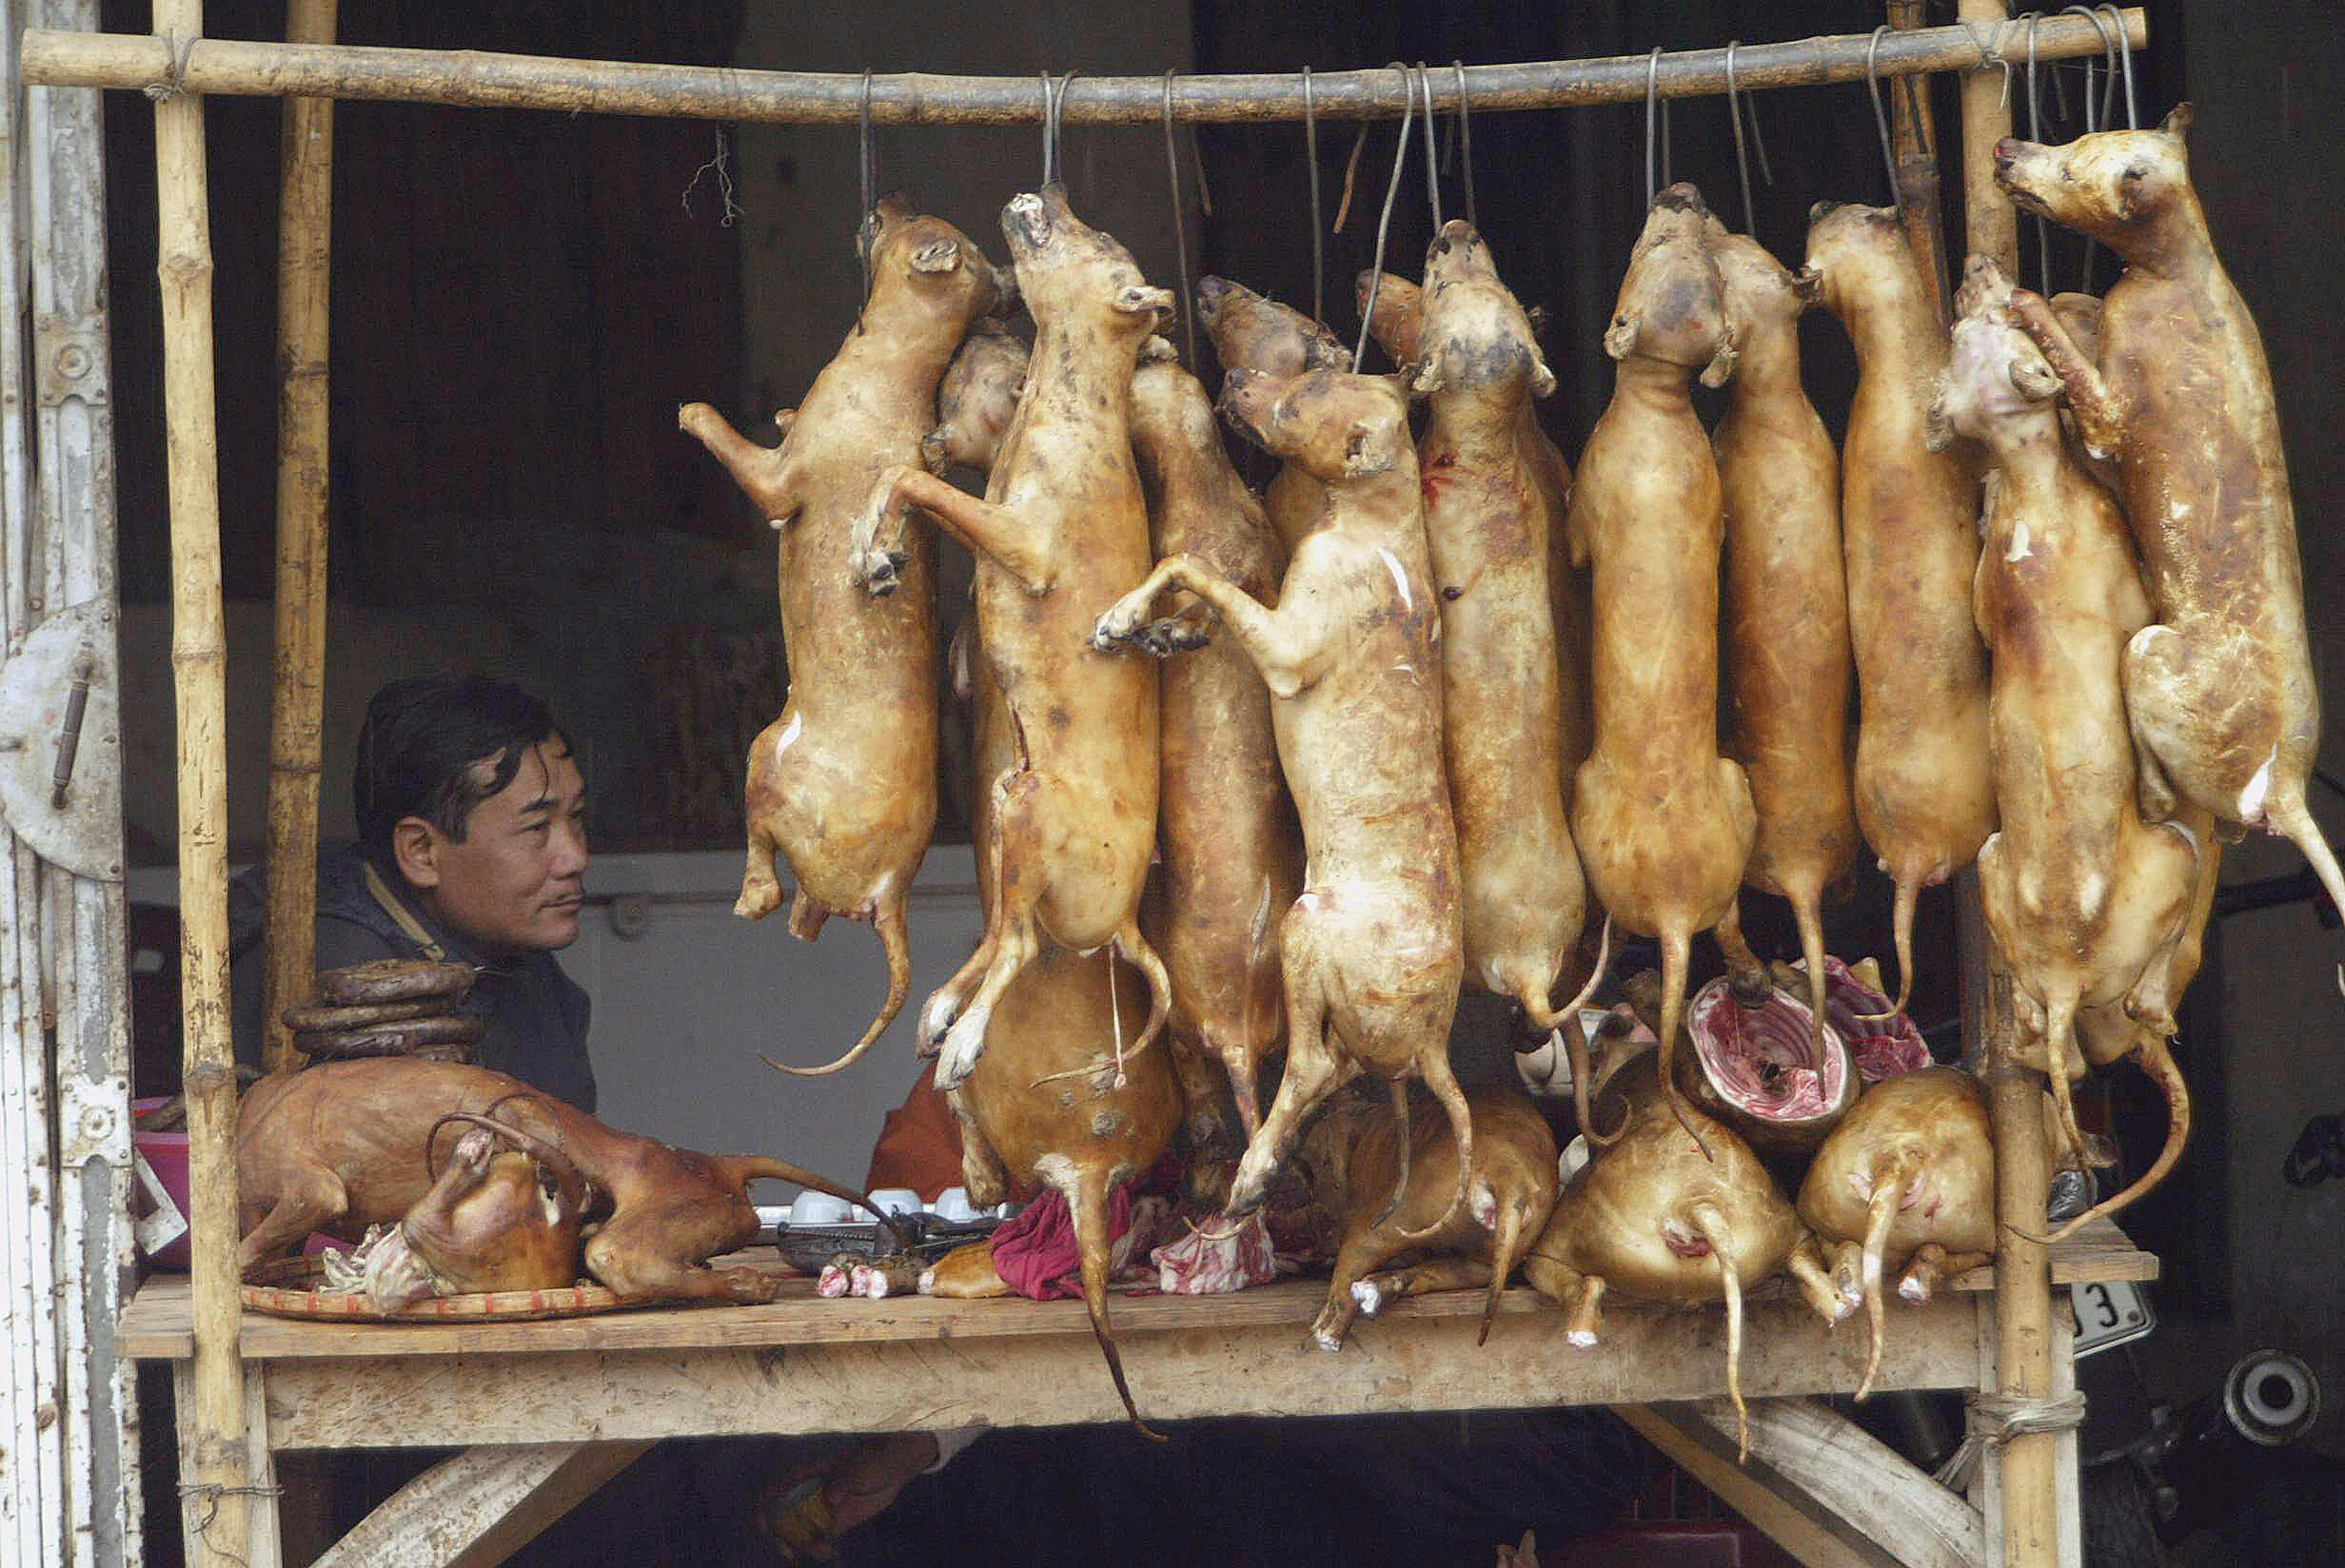 Vietnam's dog thieves ...